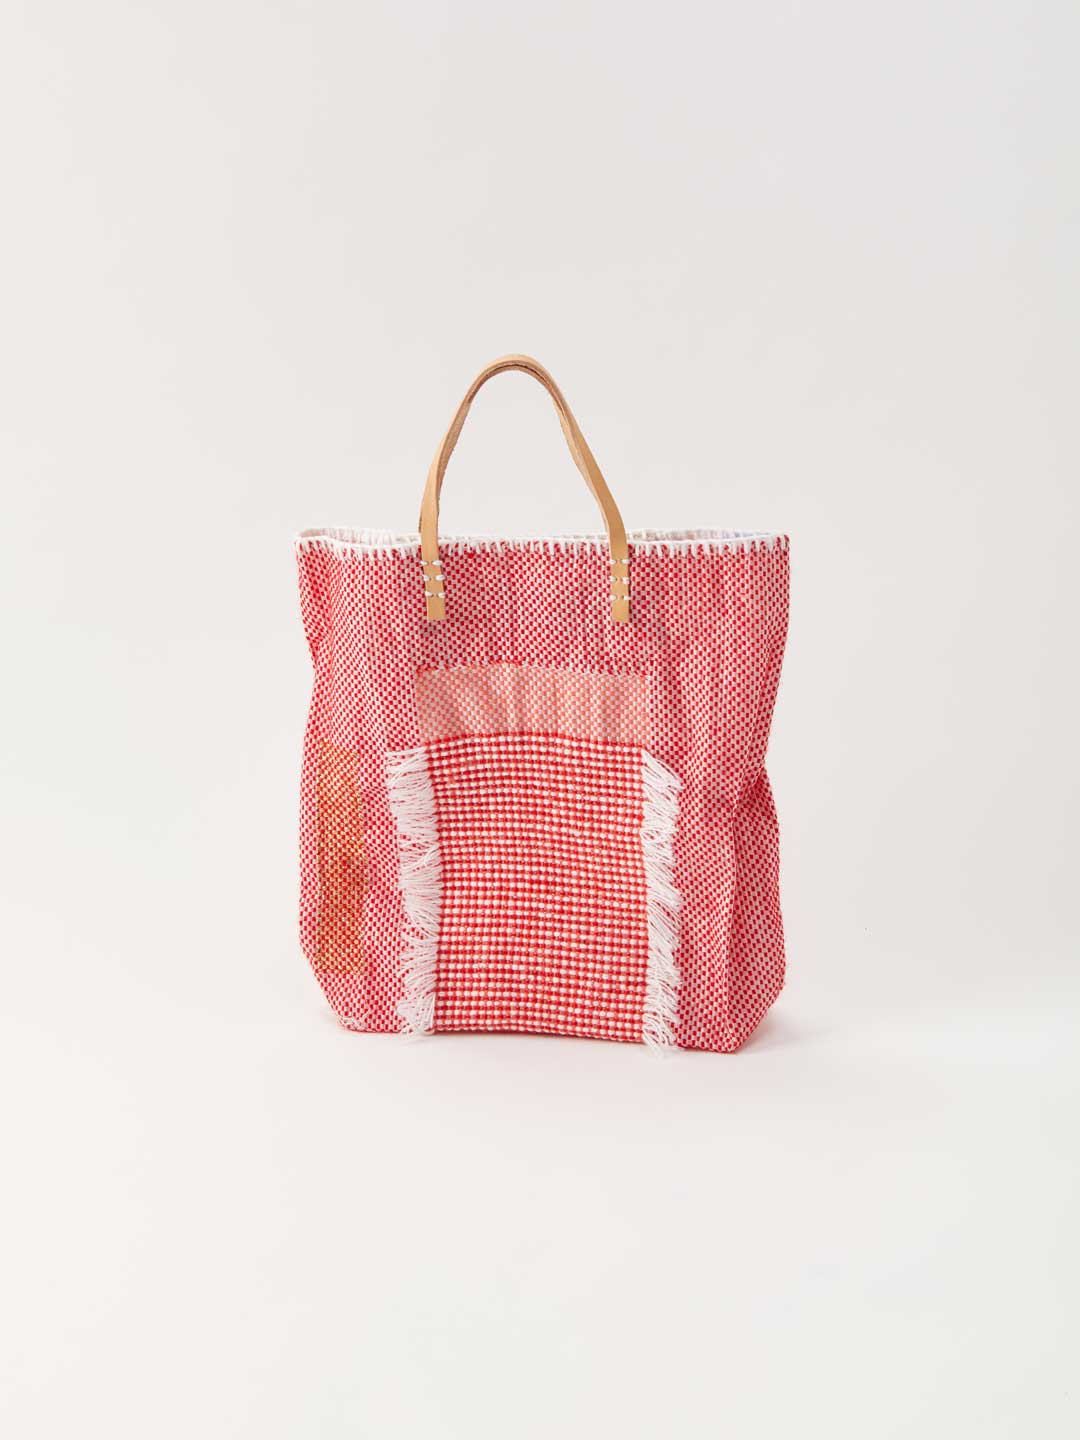 Recycled Food Tote Medium Bag - Red